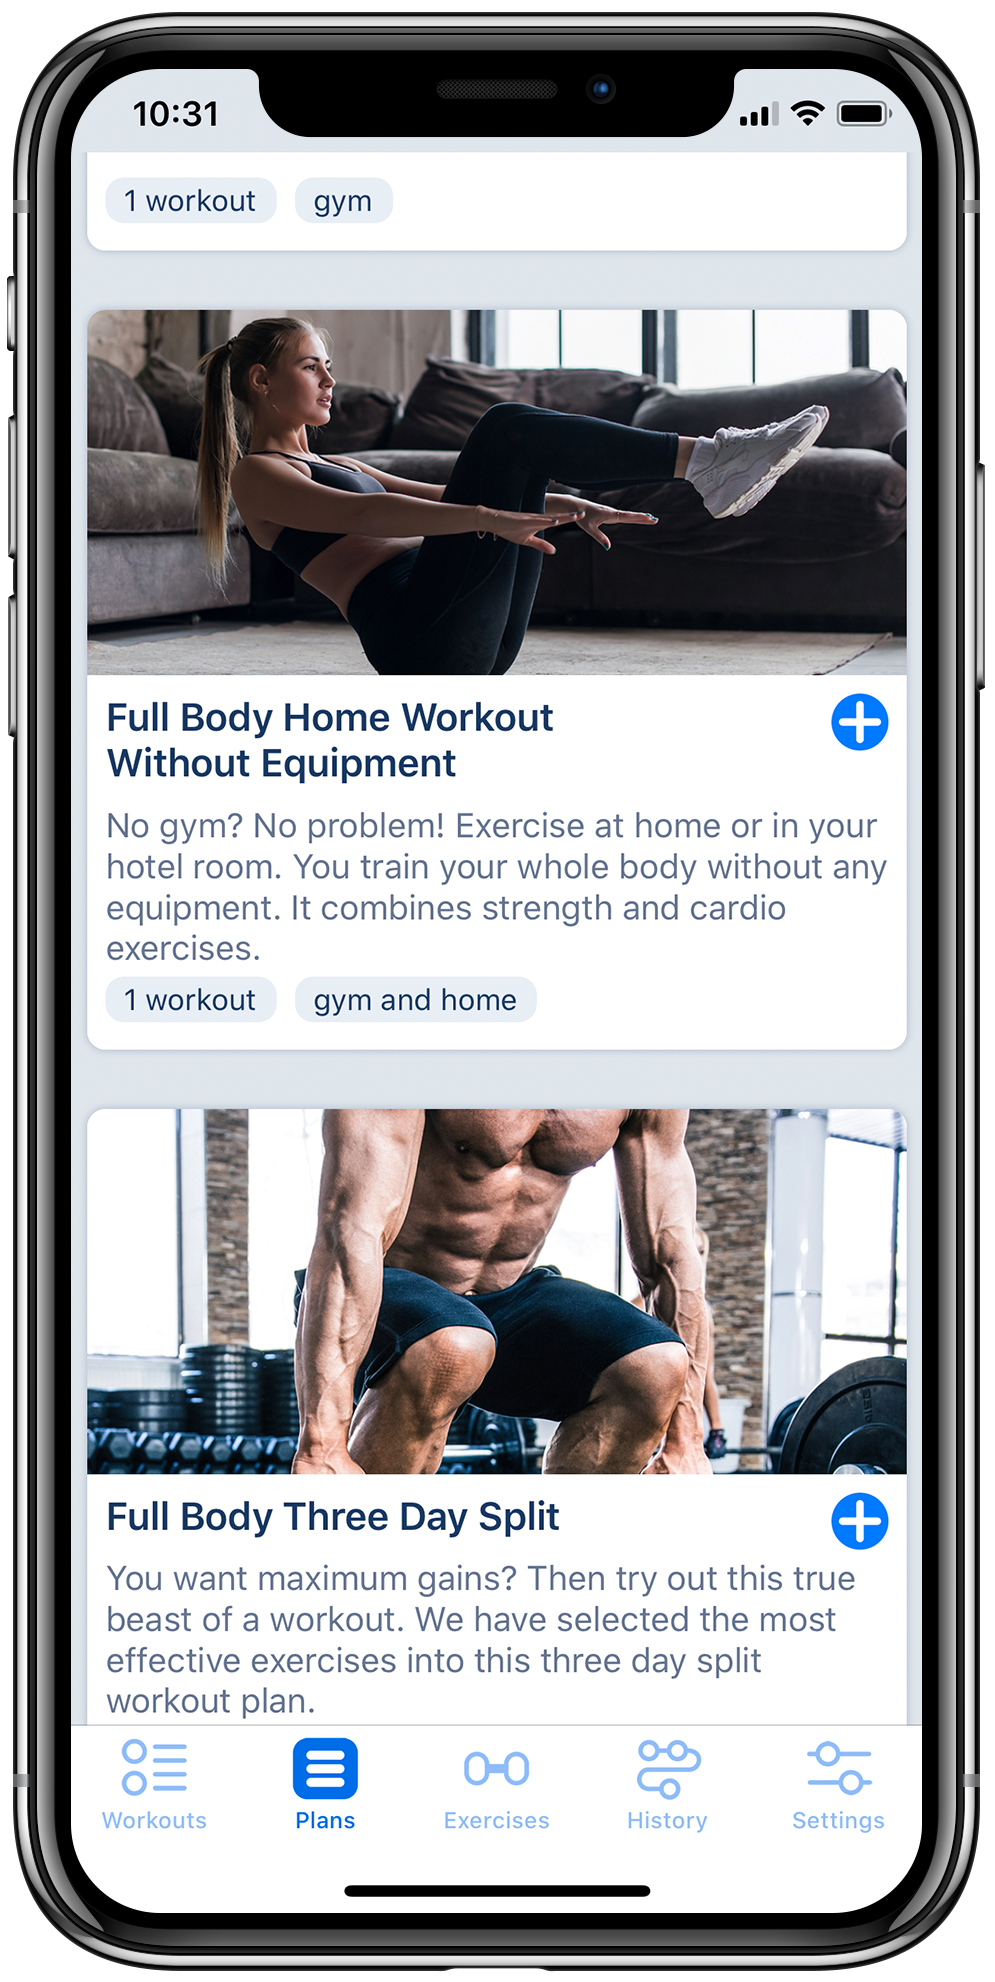 Workout tracker app on iPhone displaying list of predefined workout plans